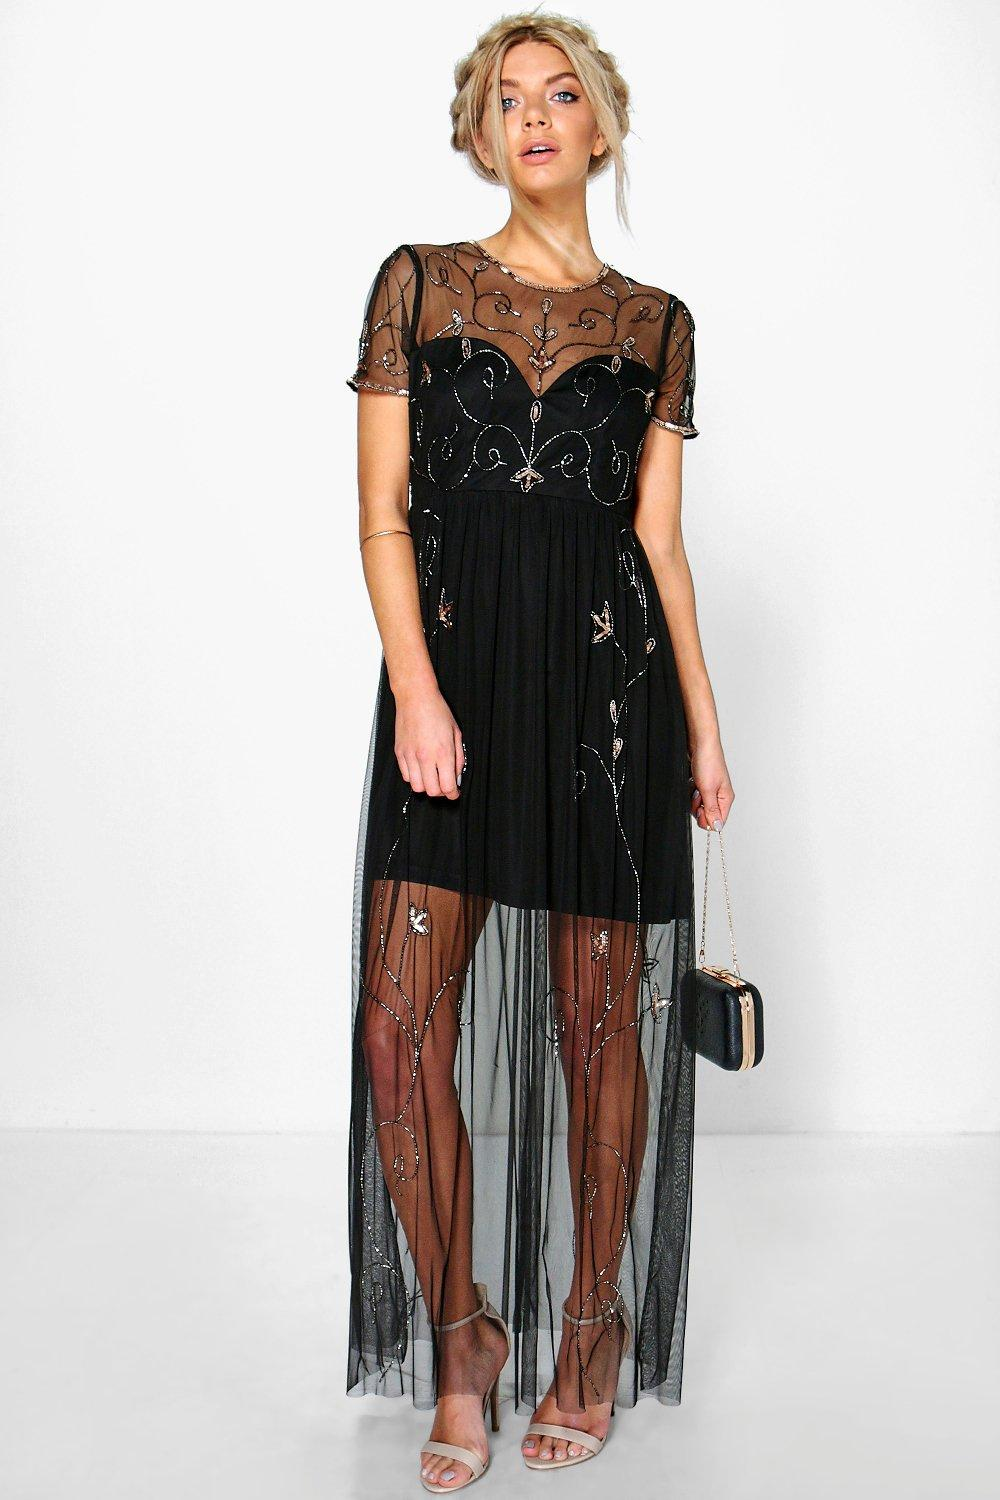 Corine Boutique Embellished Maxi Dress at boohoo.com